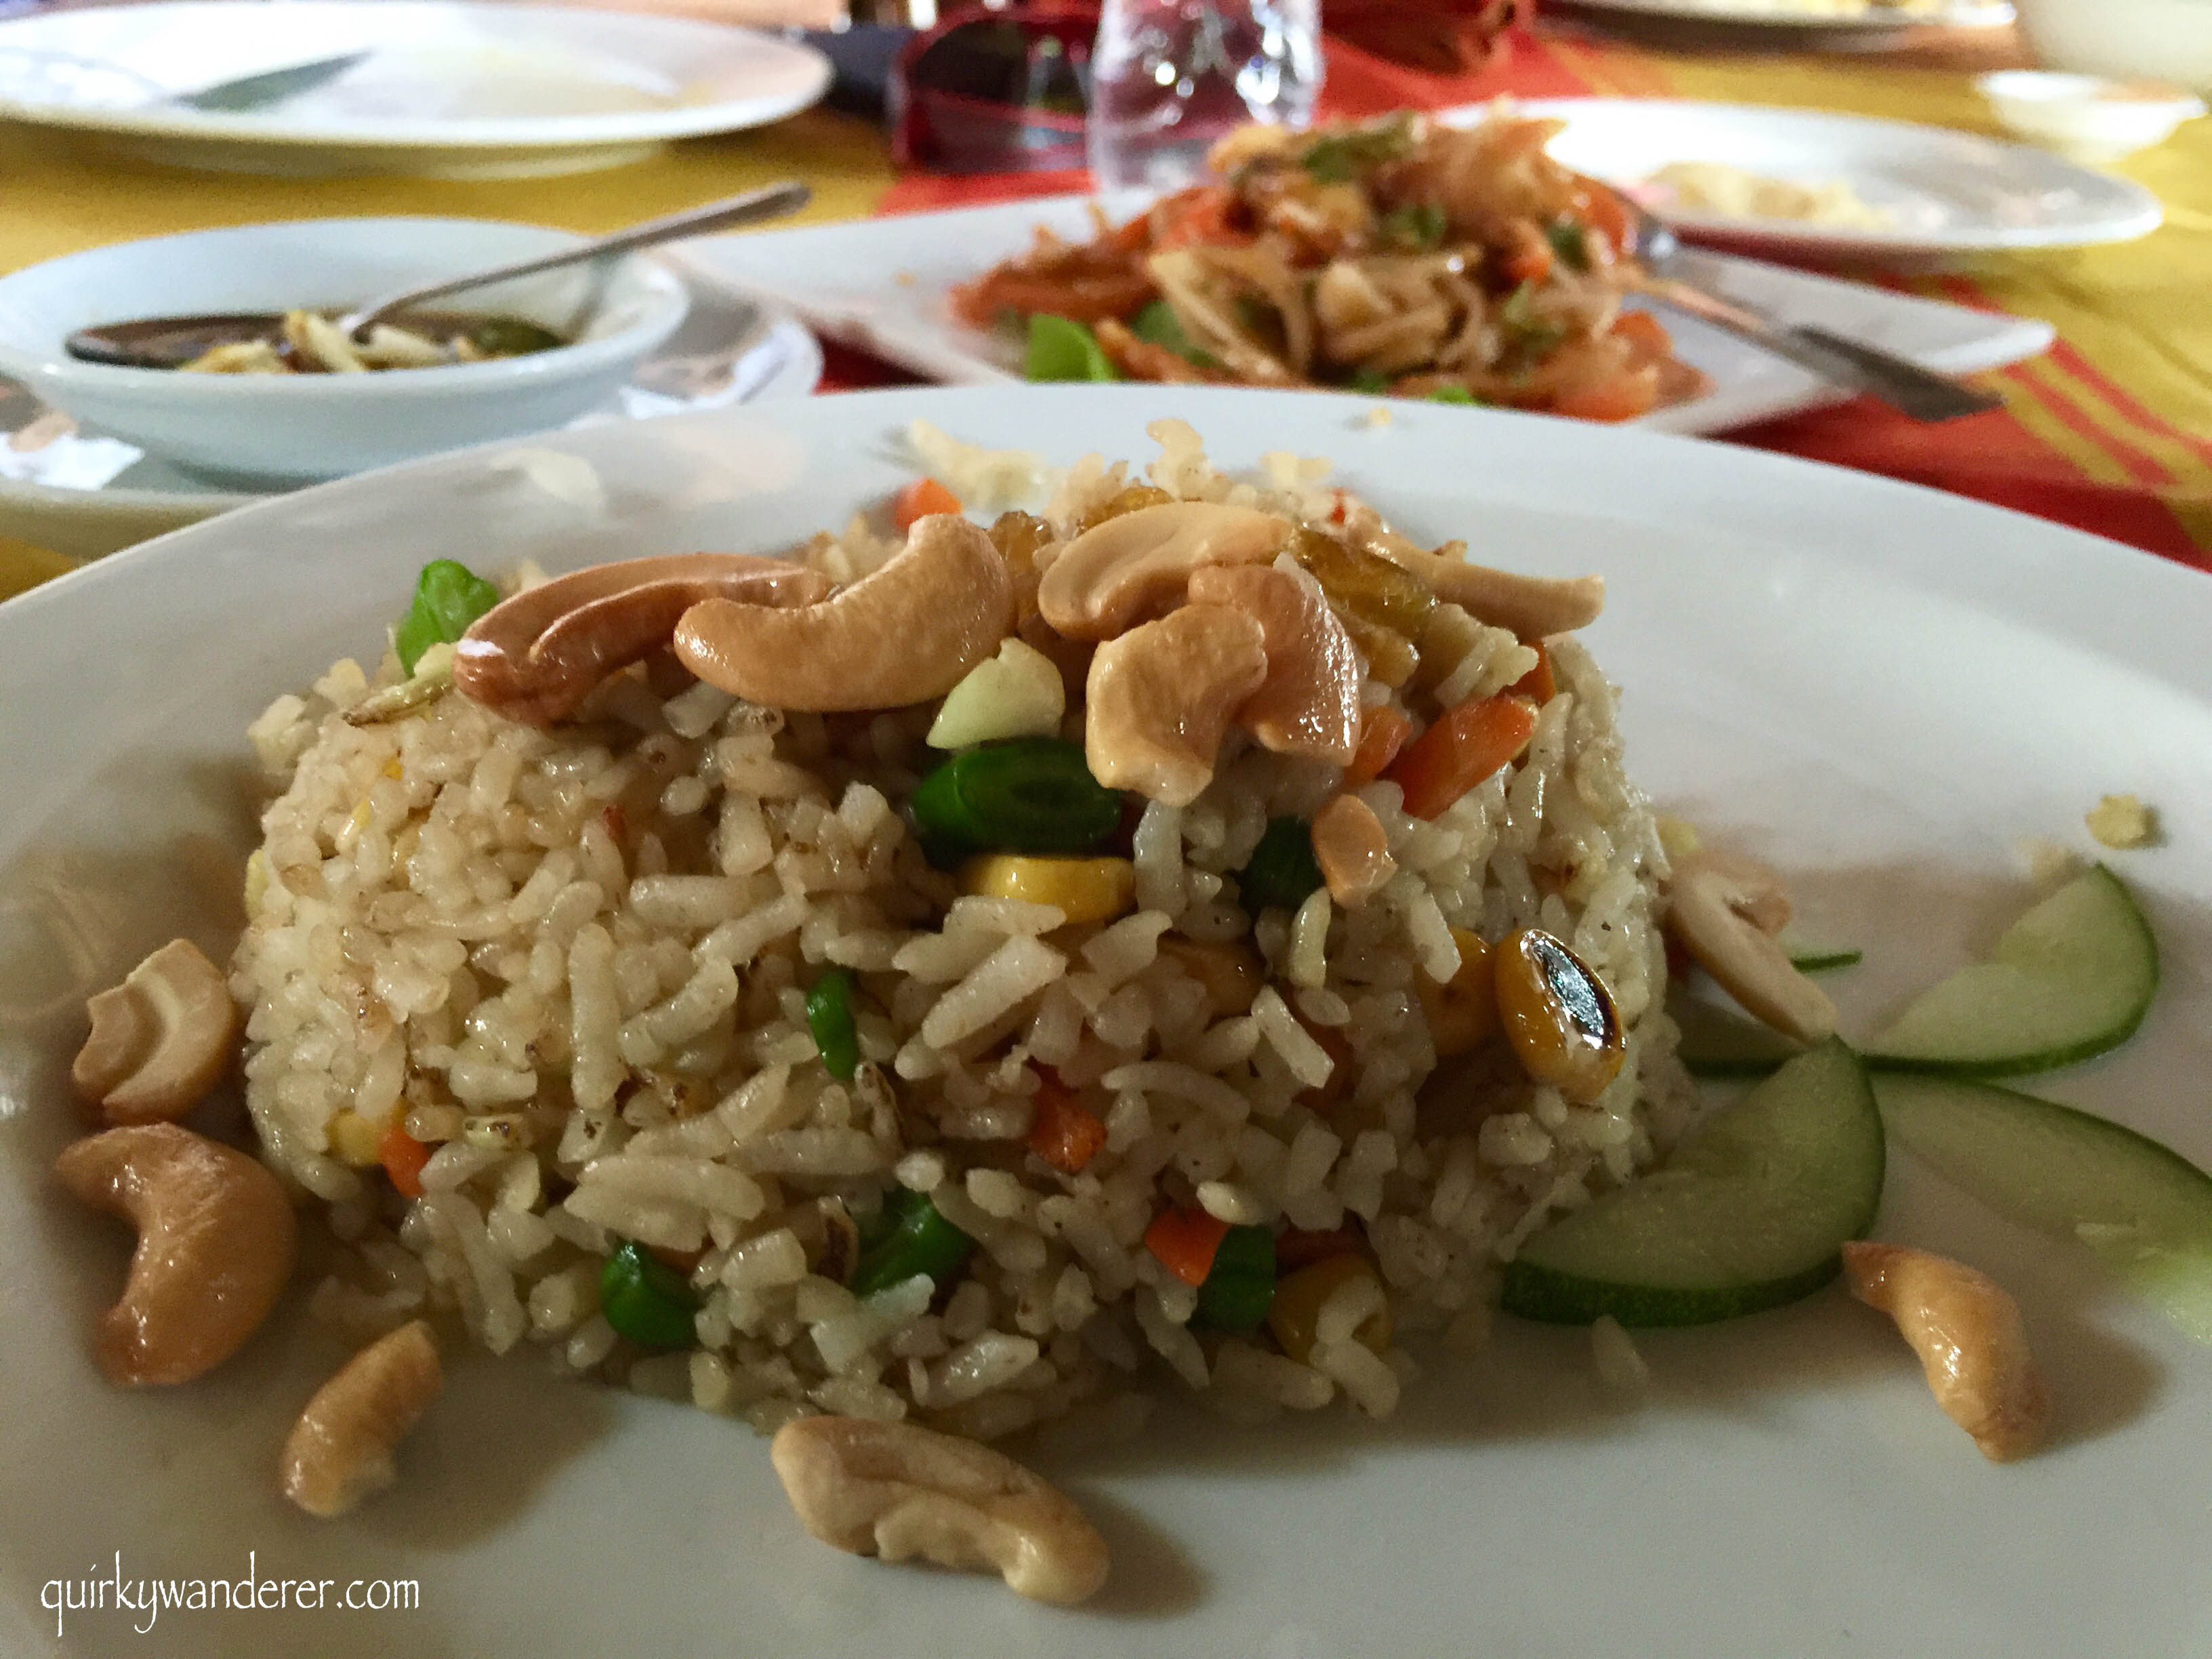 Vegetarian fried rice garnished with cashews and cucumber